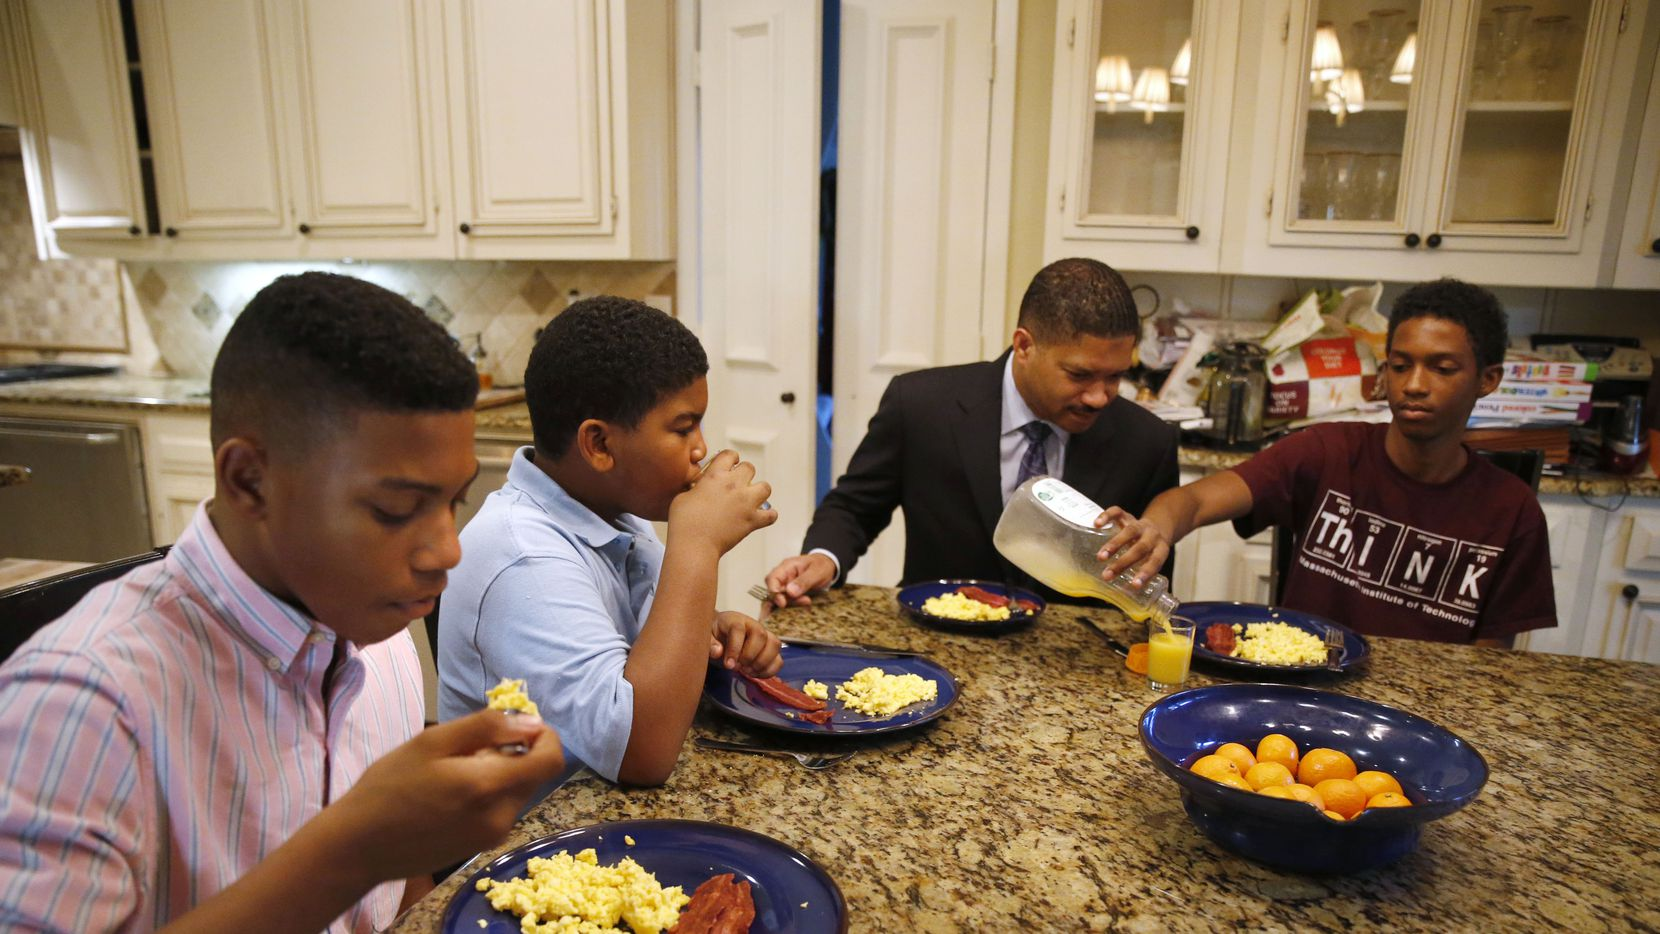 From left, William Waters, Christopher Waters, James Waters and Joshua Waters eat breakfast at their home in Dallas before heading off to school. (Vernon Bryant/Staff Photographer)